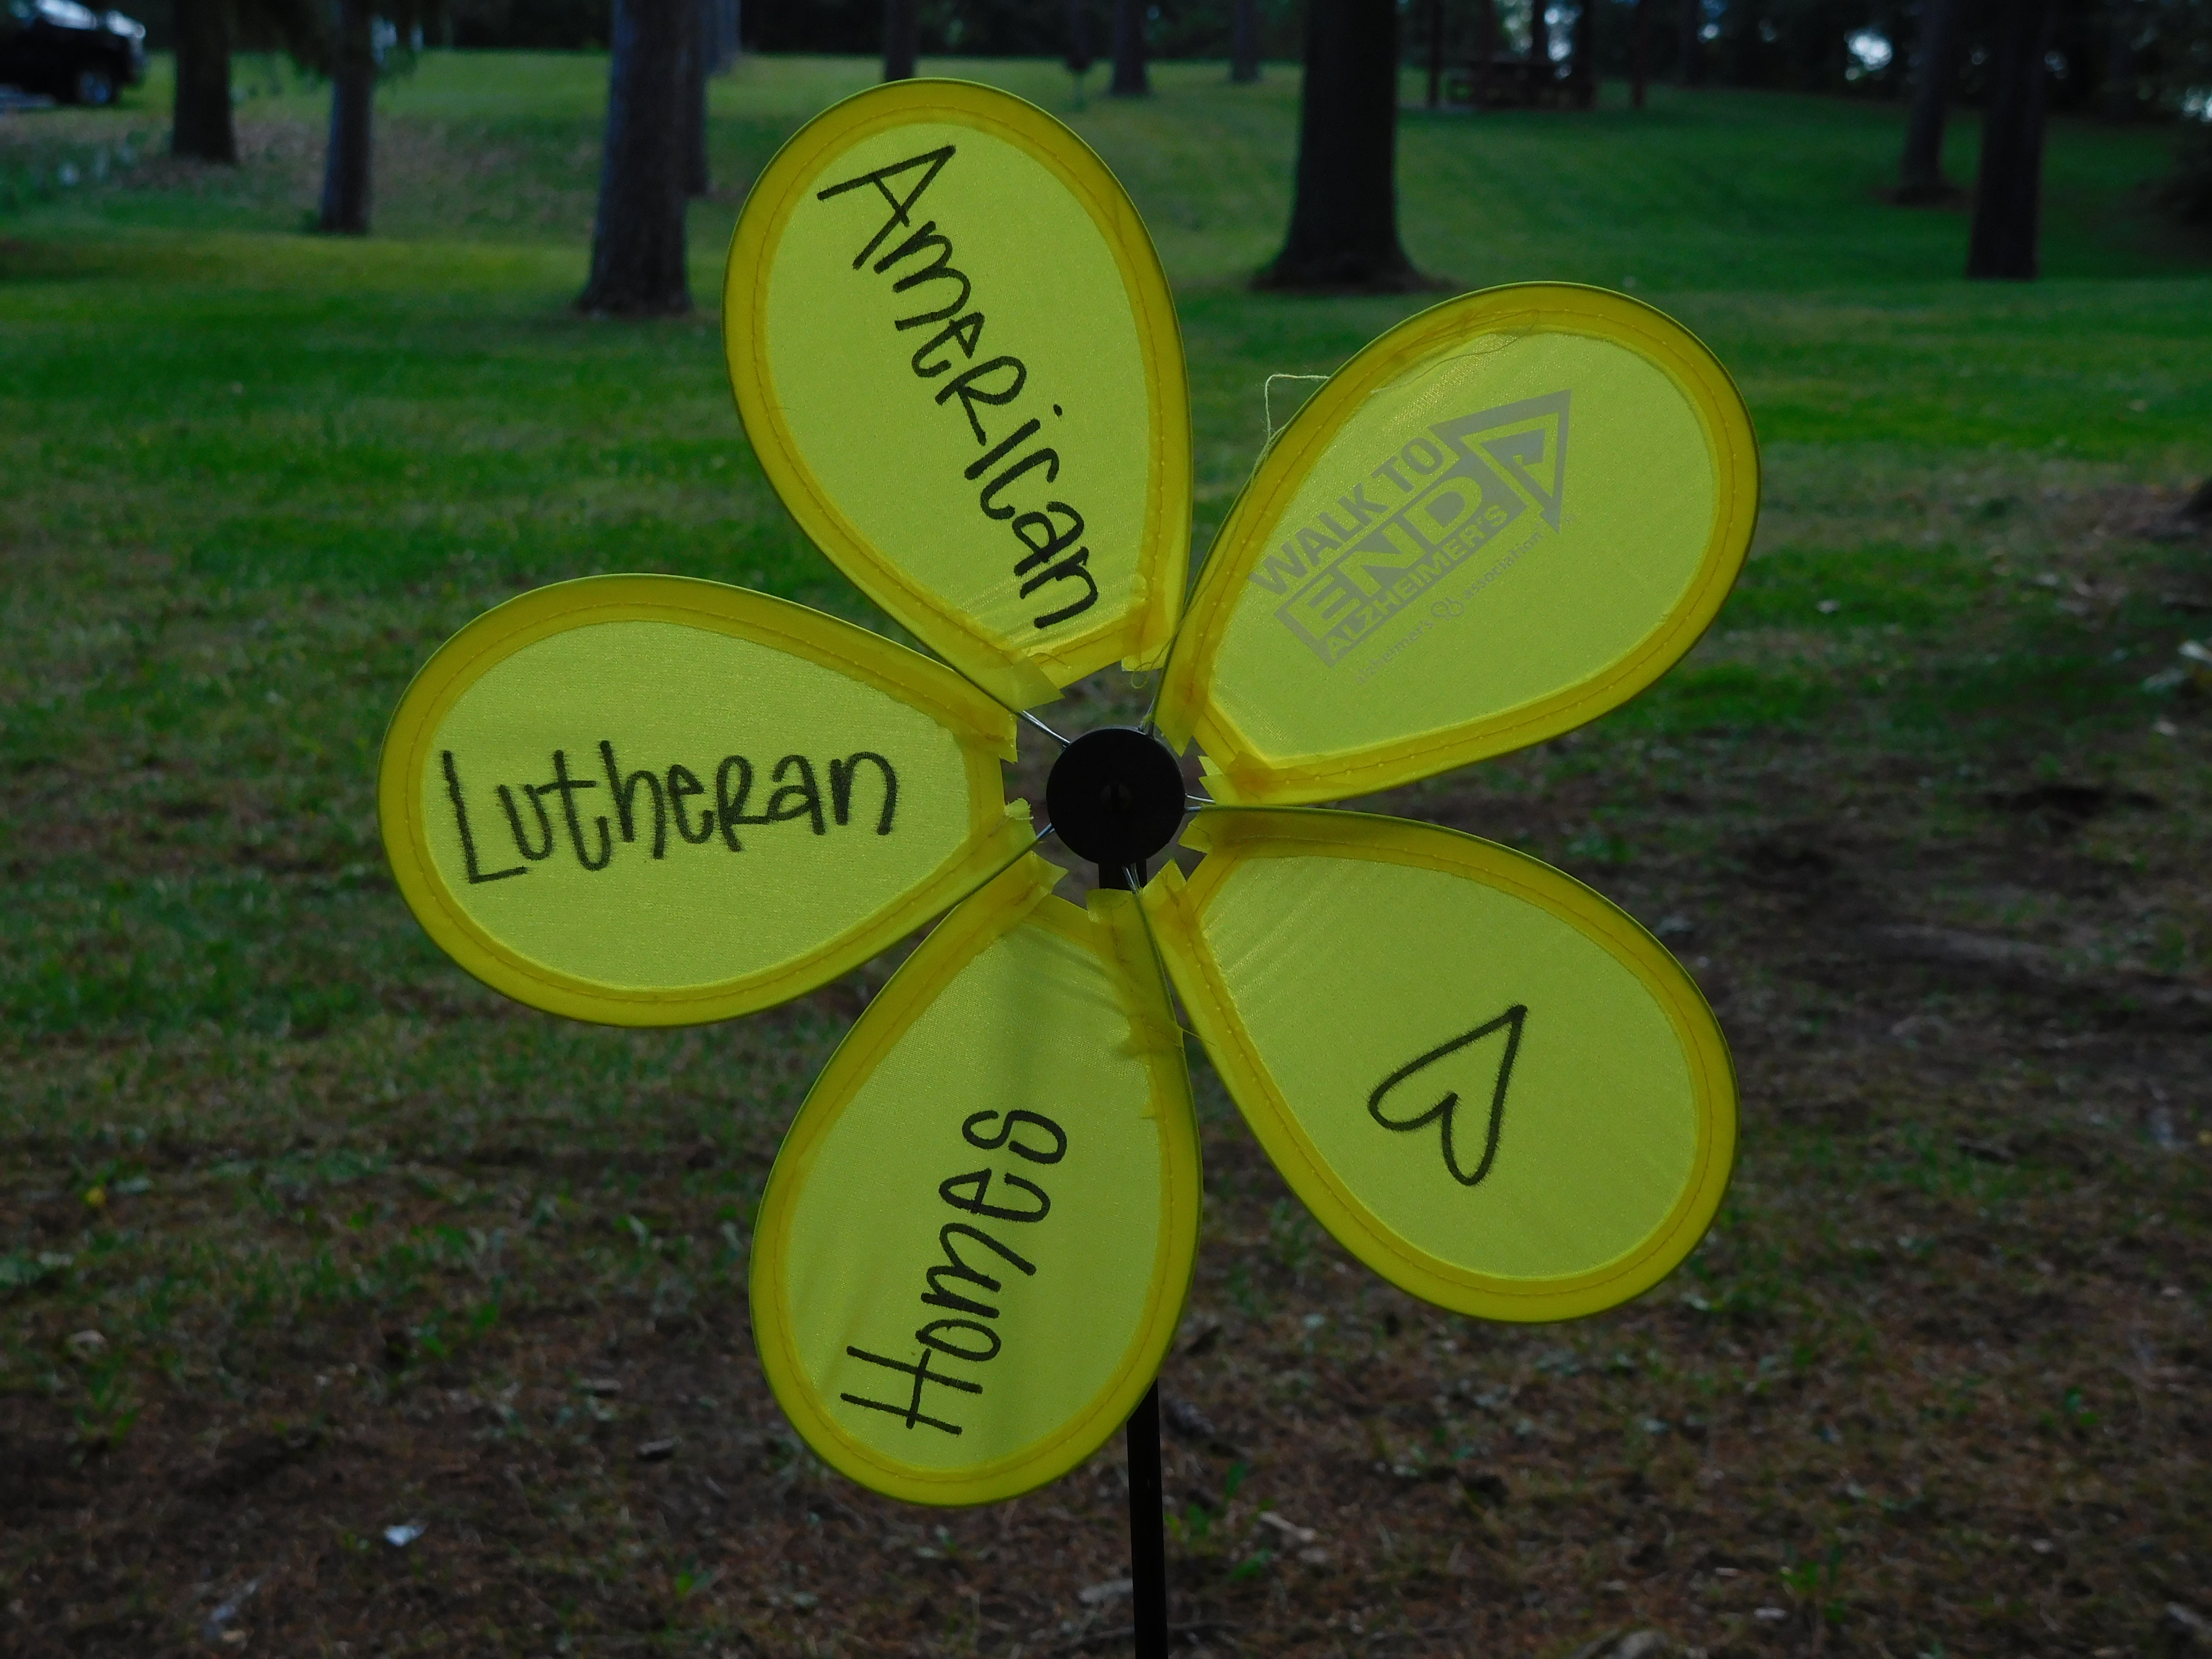 american lutheran homes walk to end alzheimers